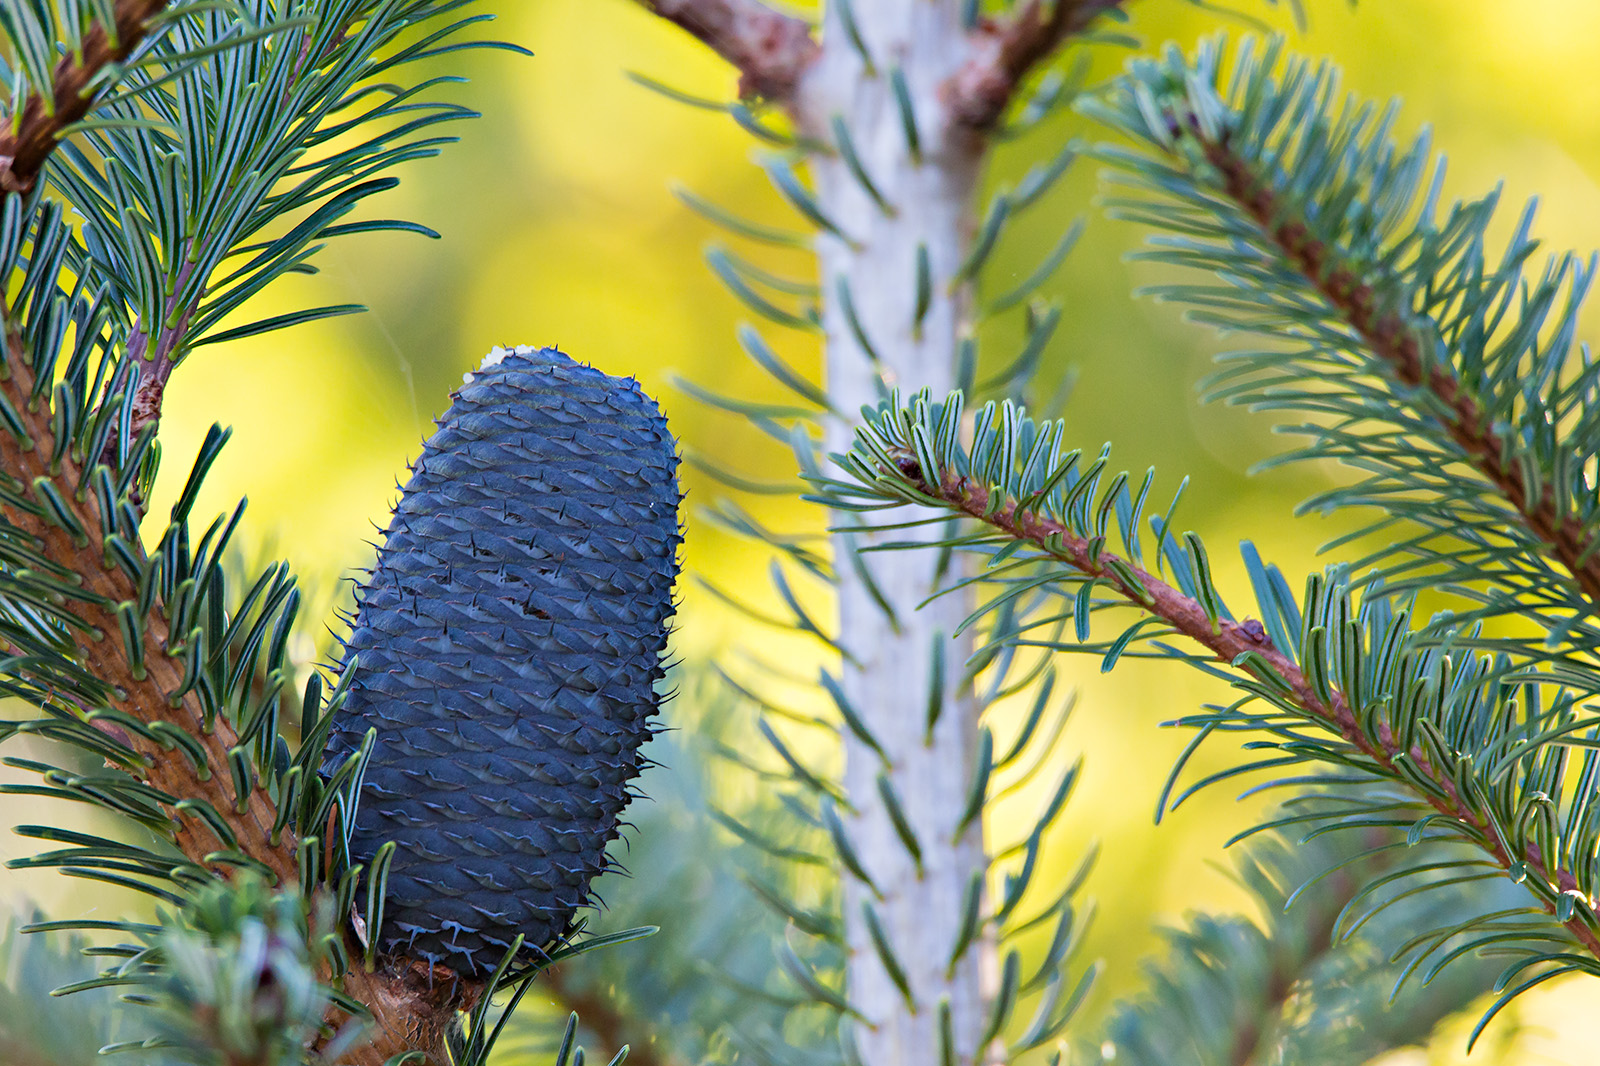 Abies Delavayi Botany Photo Of The Day